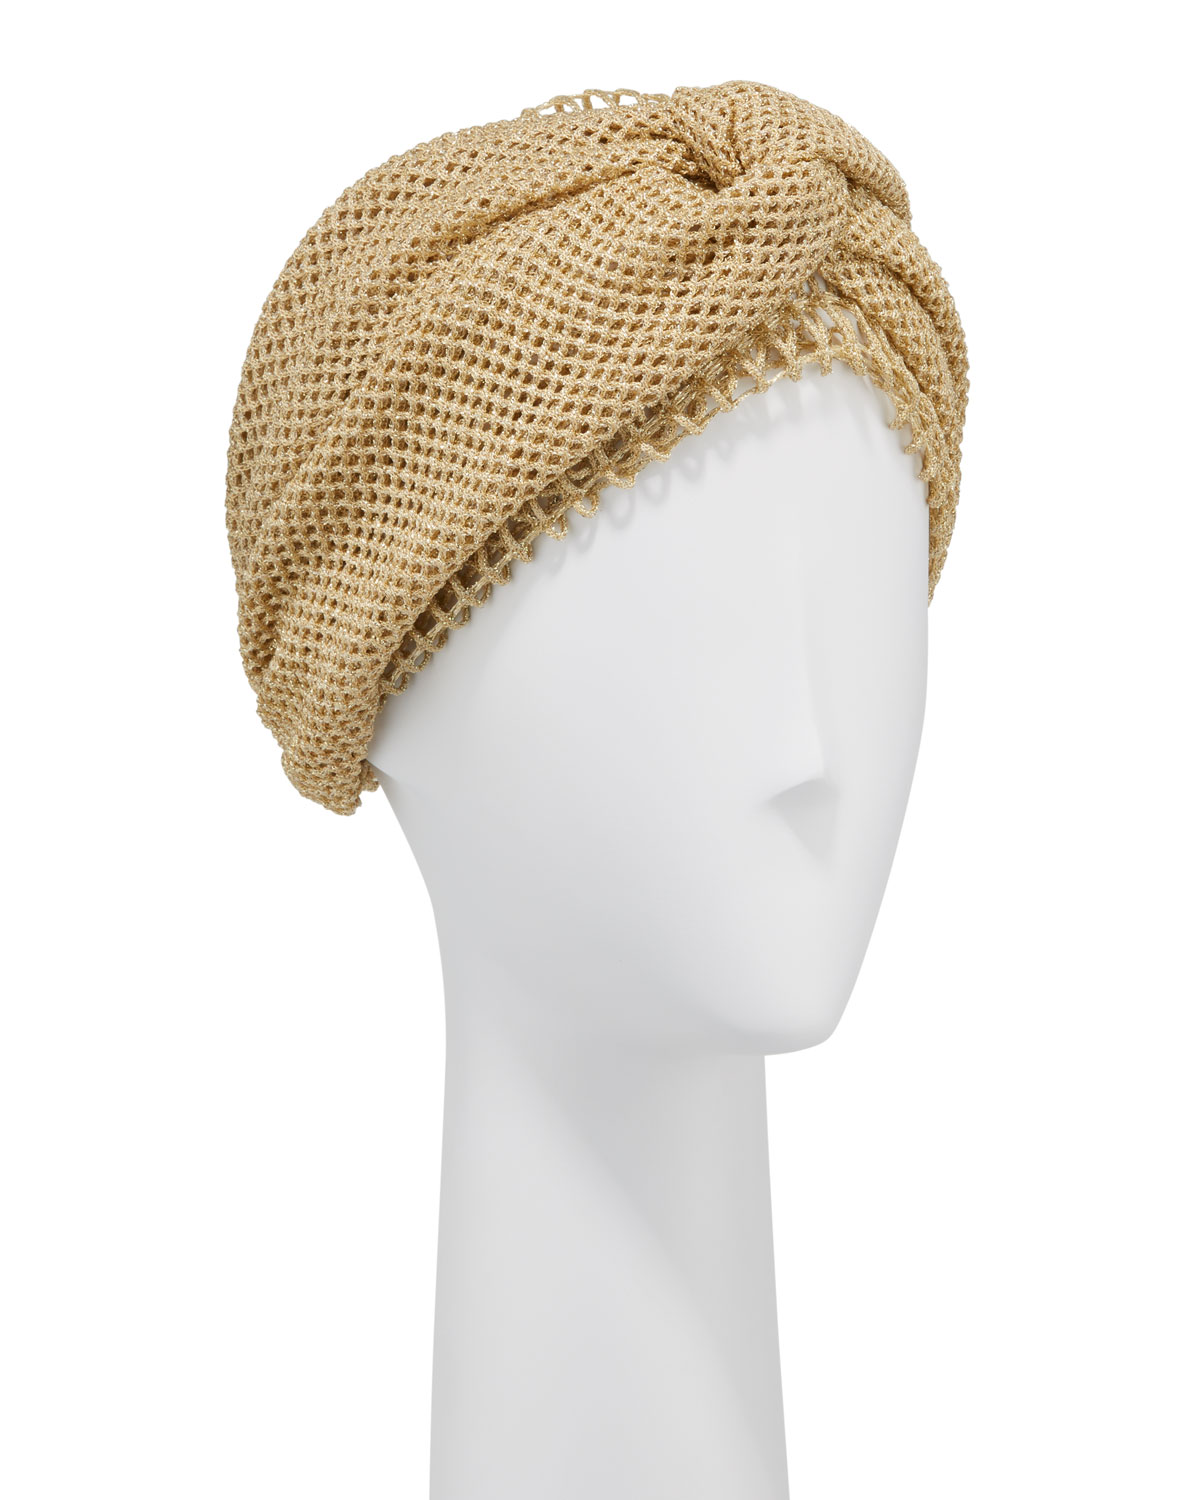 Missoni Accessories MIXED KNIT KNOTTED HEADBAND